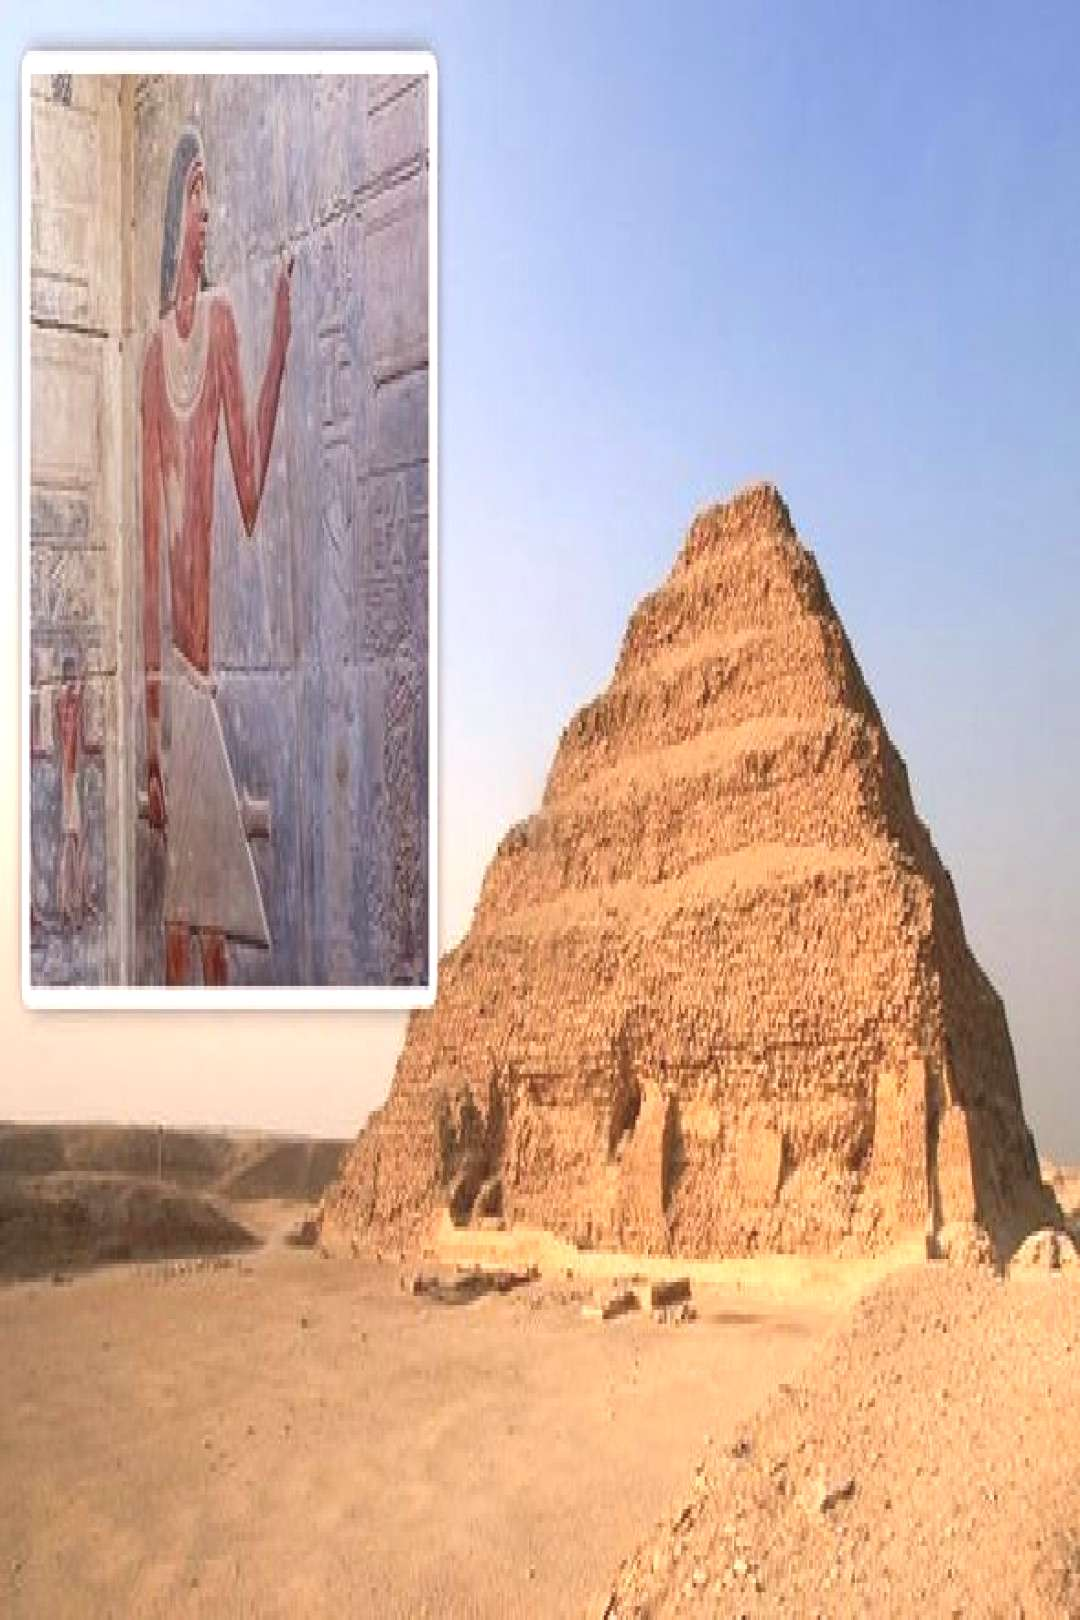 DAILY EXPRESS - expert pins hope on new royal tomb find near 100 percent certain!